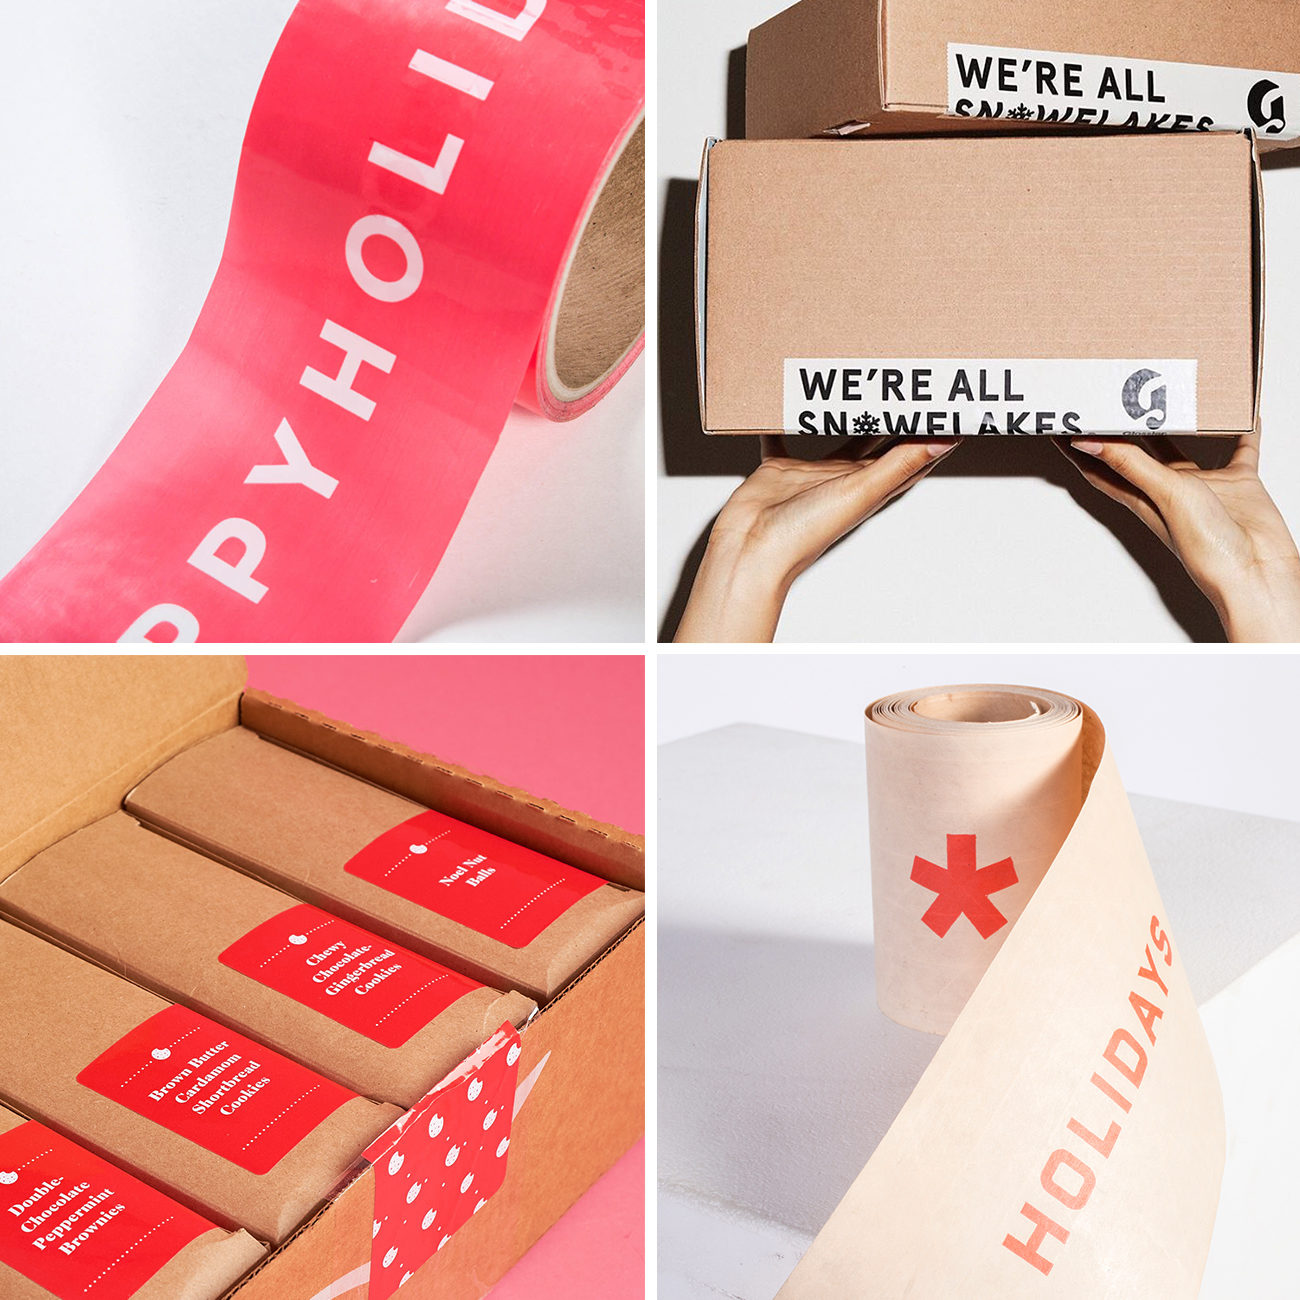 Photos via: Lumi, Glossier, My Subscription Addiction 70 Ideas to Spruce Up Your Holiday Packaging Design